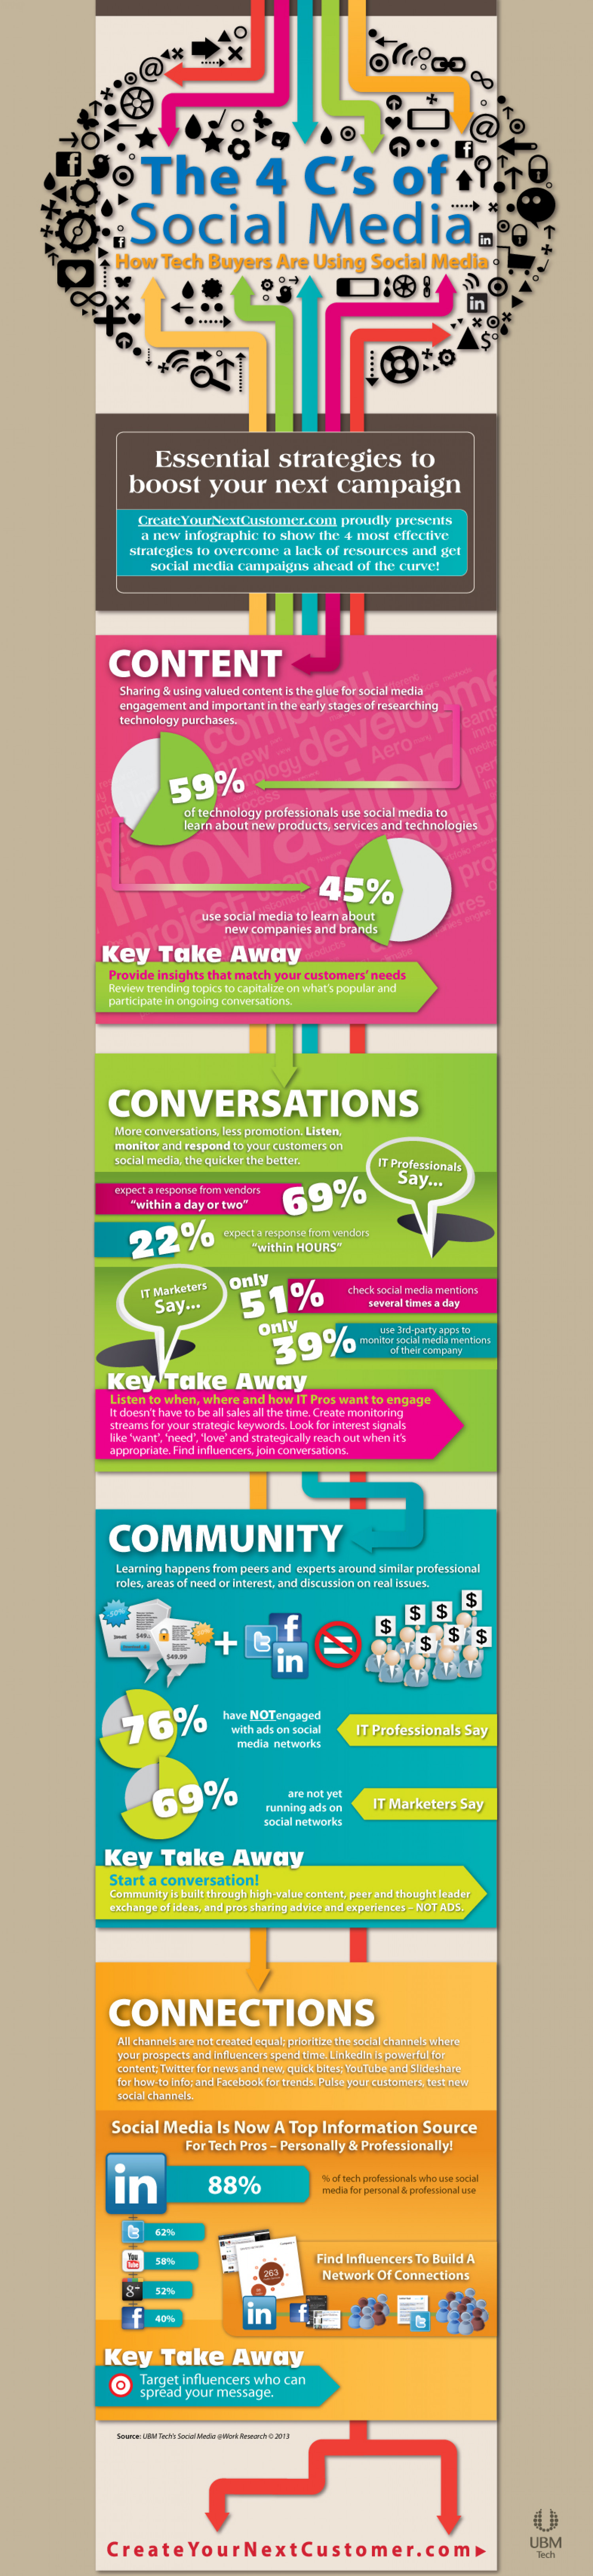 The 4 Cs of Social Media Infographic